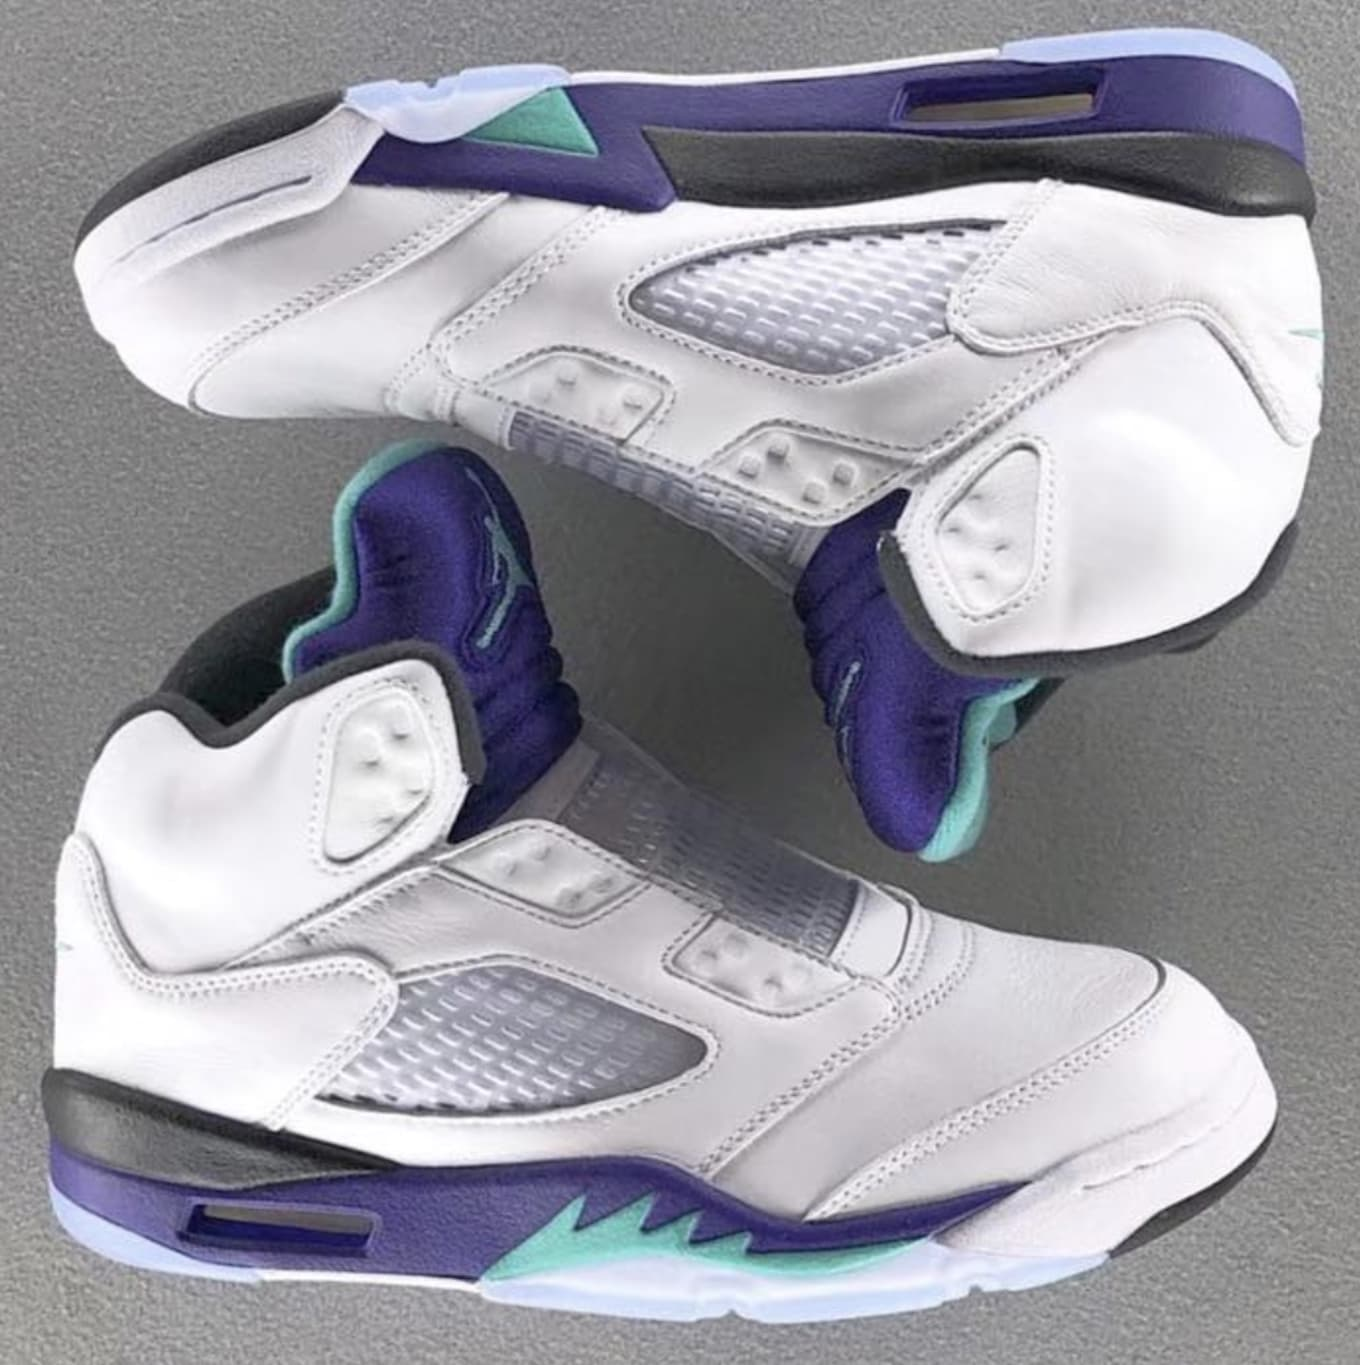 new styles 932e3 81c99 Air Jordan V 5 Retro NRG 'White/Grape Ice/Black/New Emerald ...